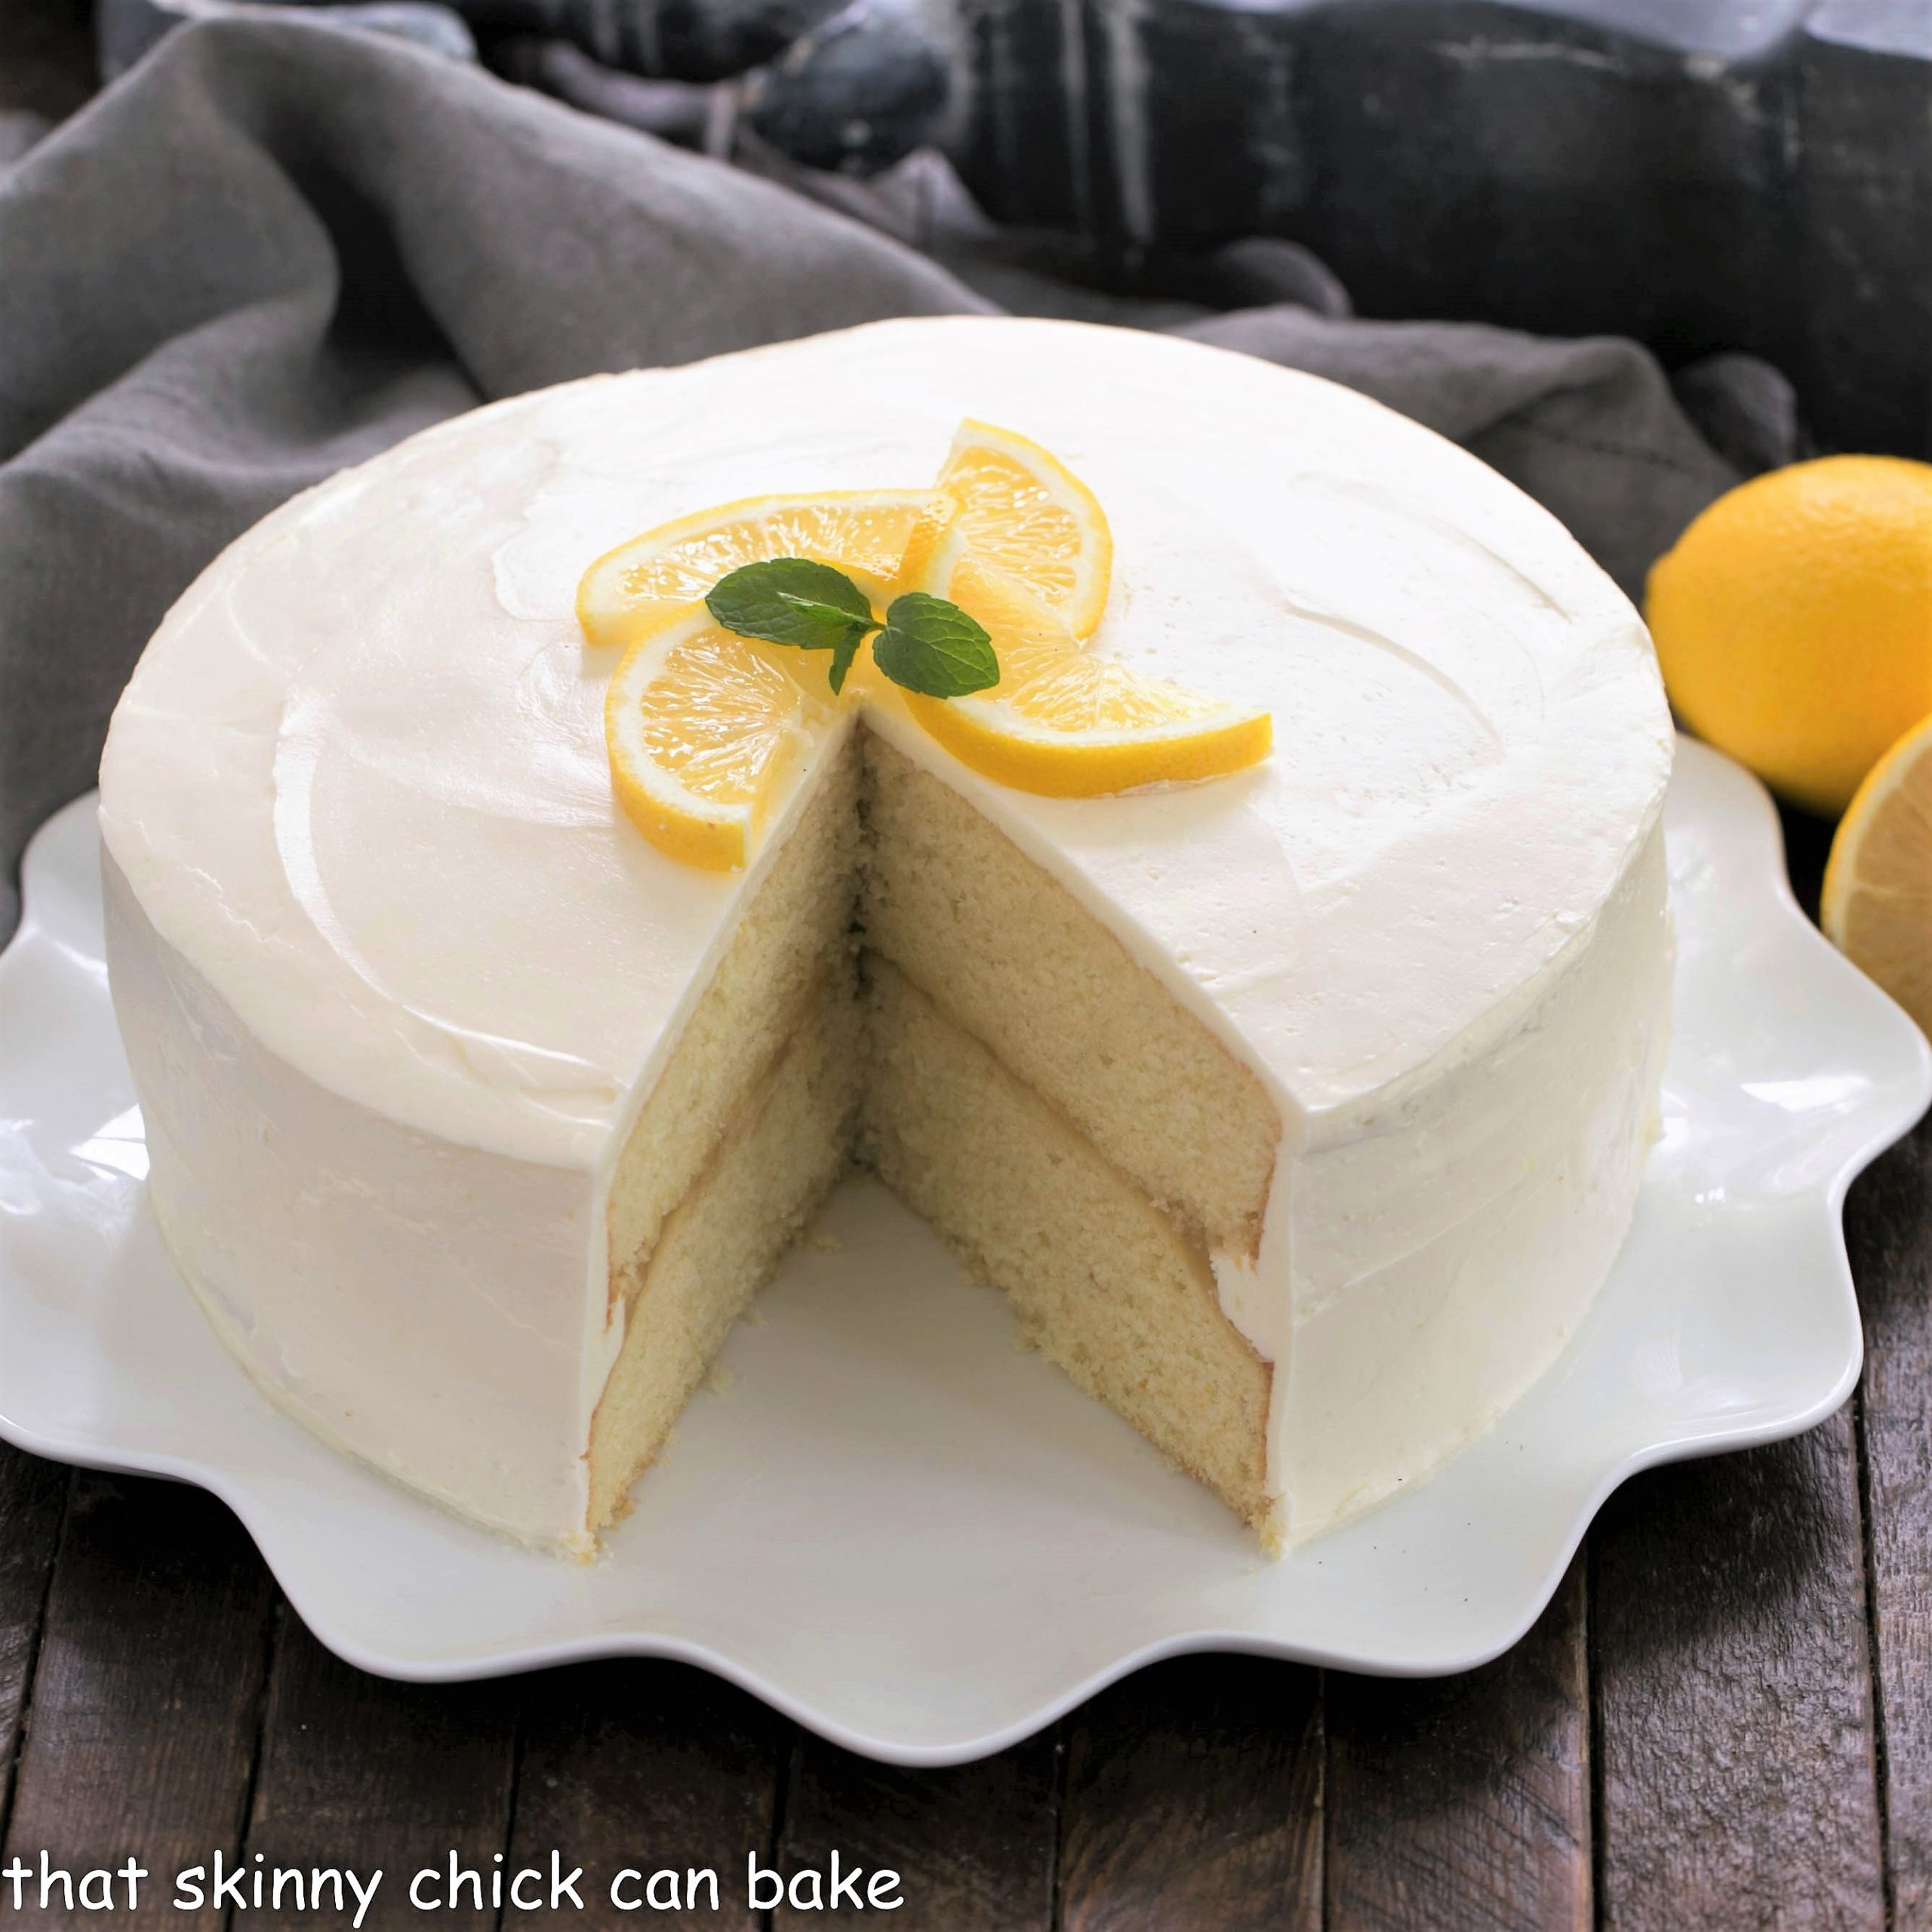 Lemon cake with a wedge cut out on a white platter